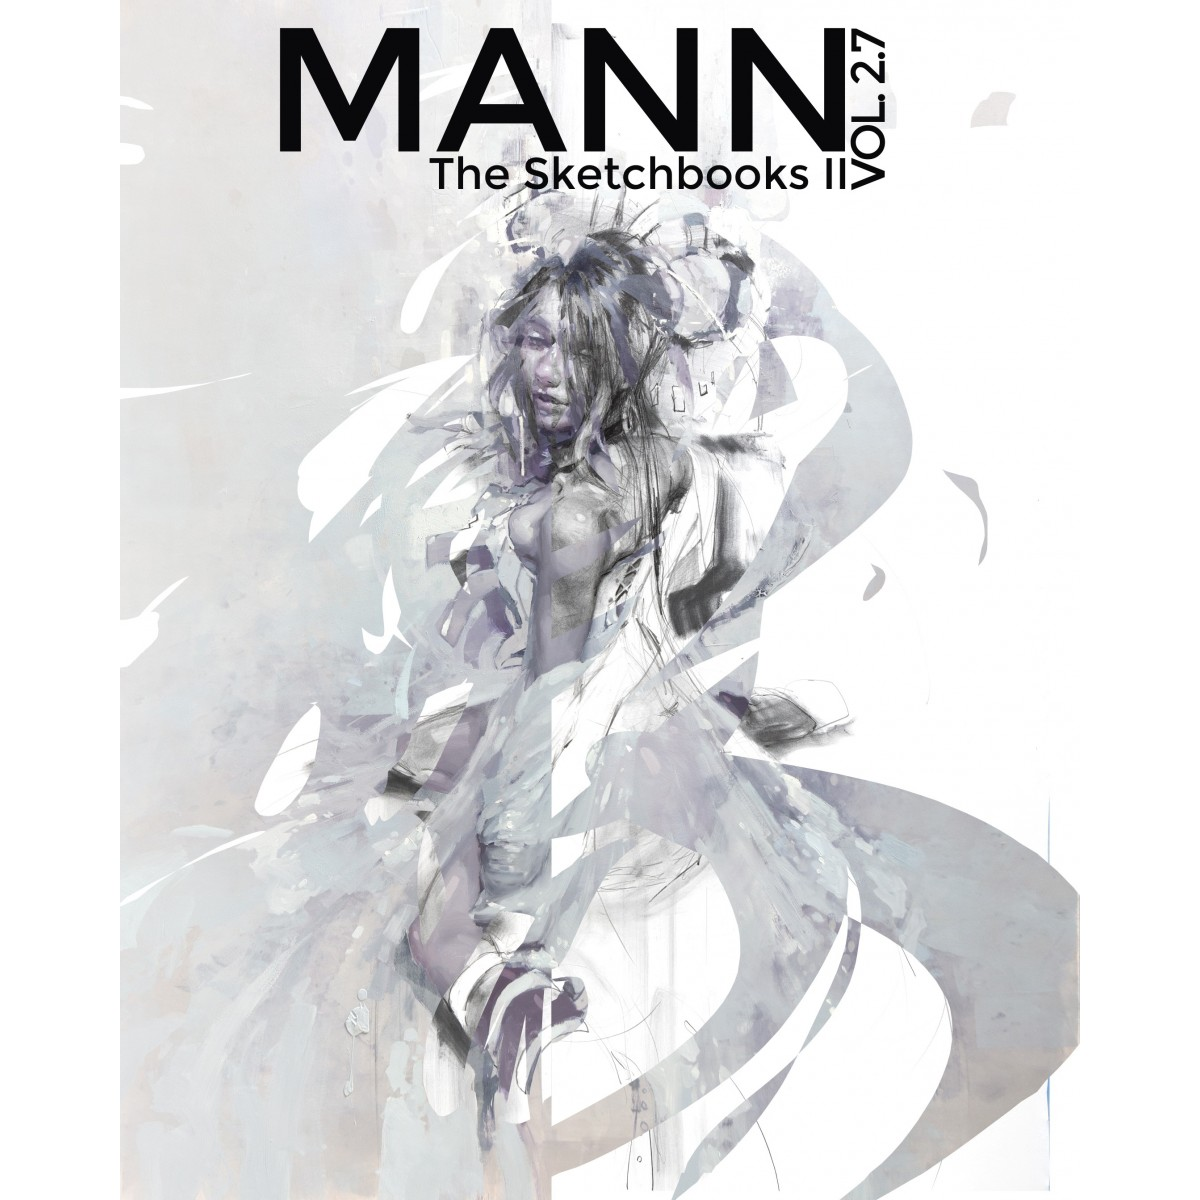 MANN Vol. 1.7 The Sketchbooks